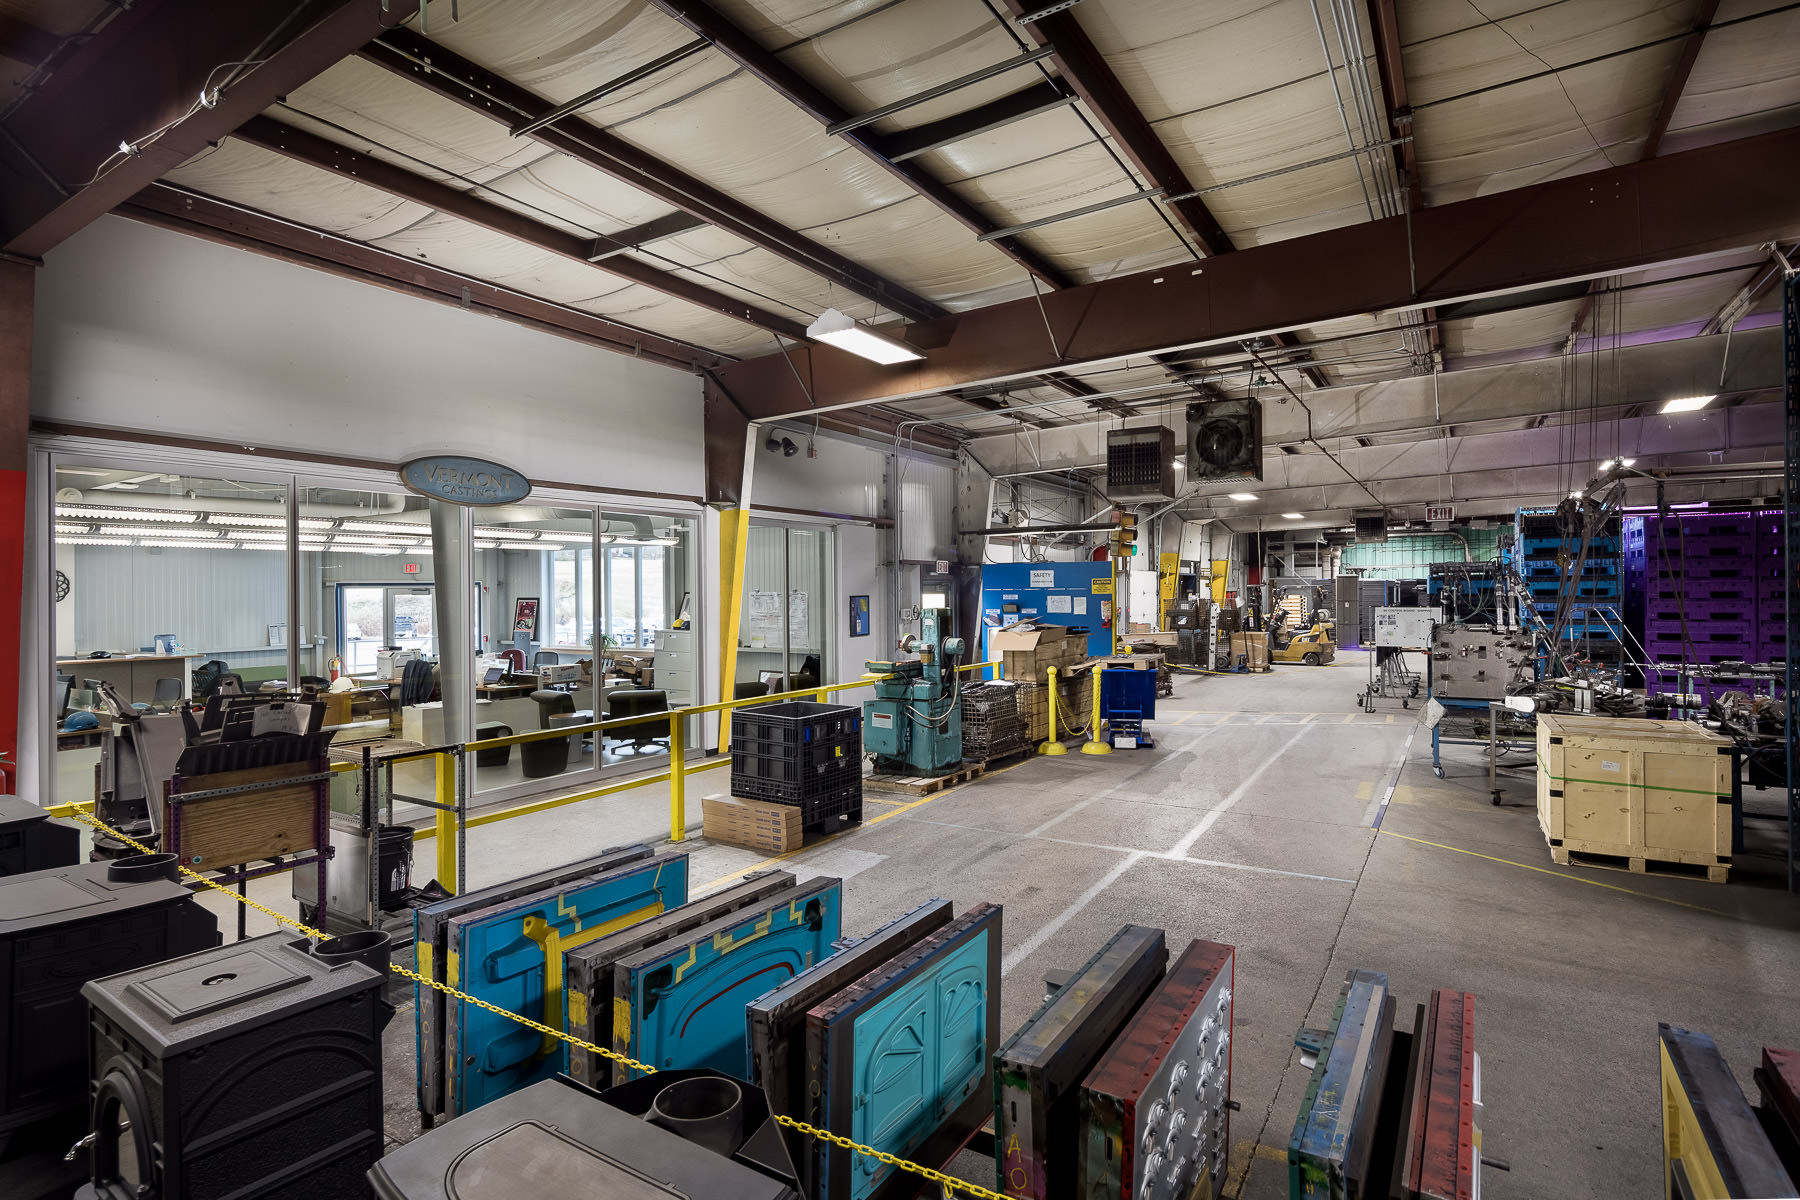 An interior photo of the renovated Vermont Castings manufacturing facility built by Neagley & Chase Construction and photographed by Stina Booth